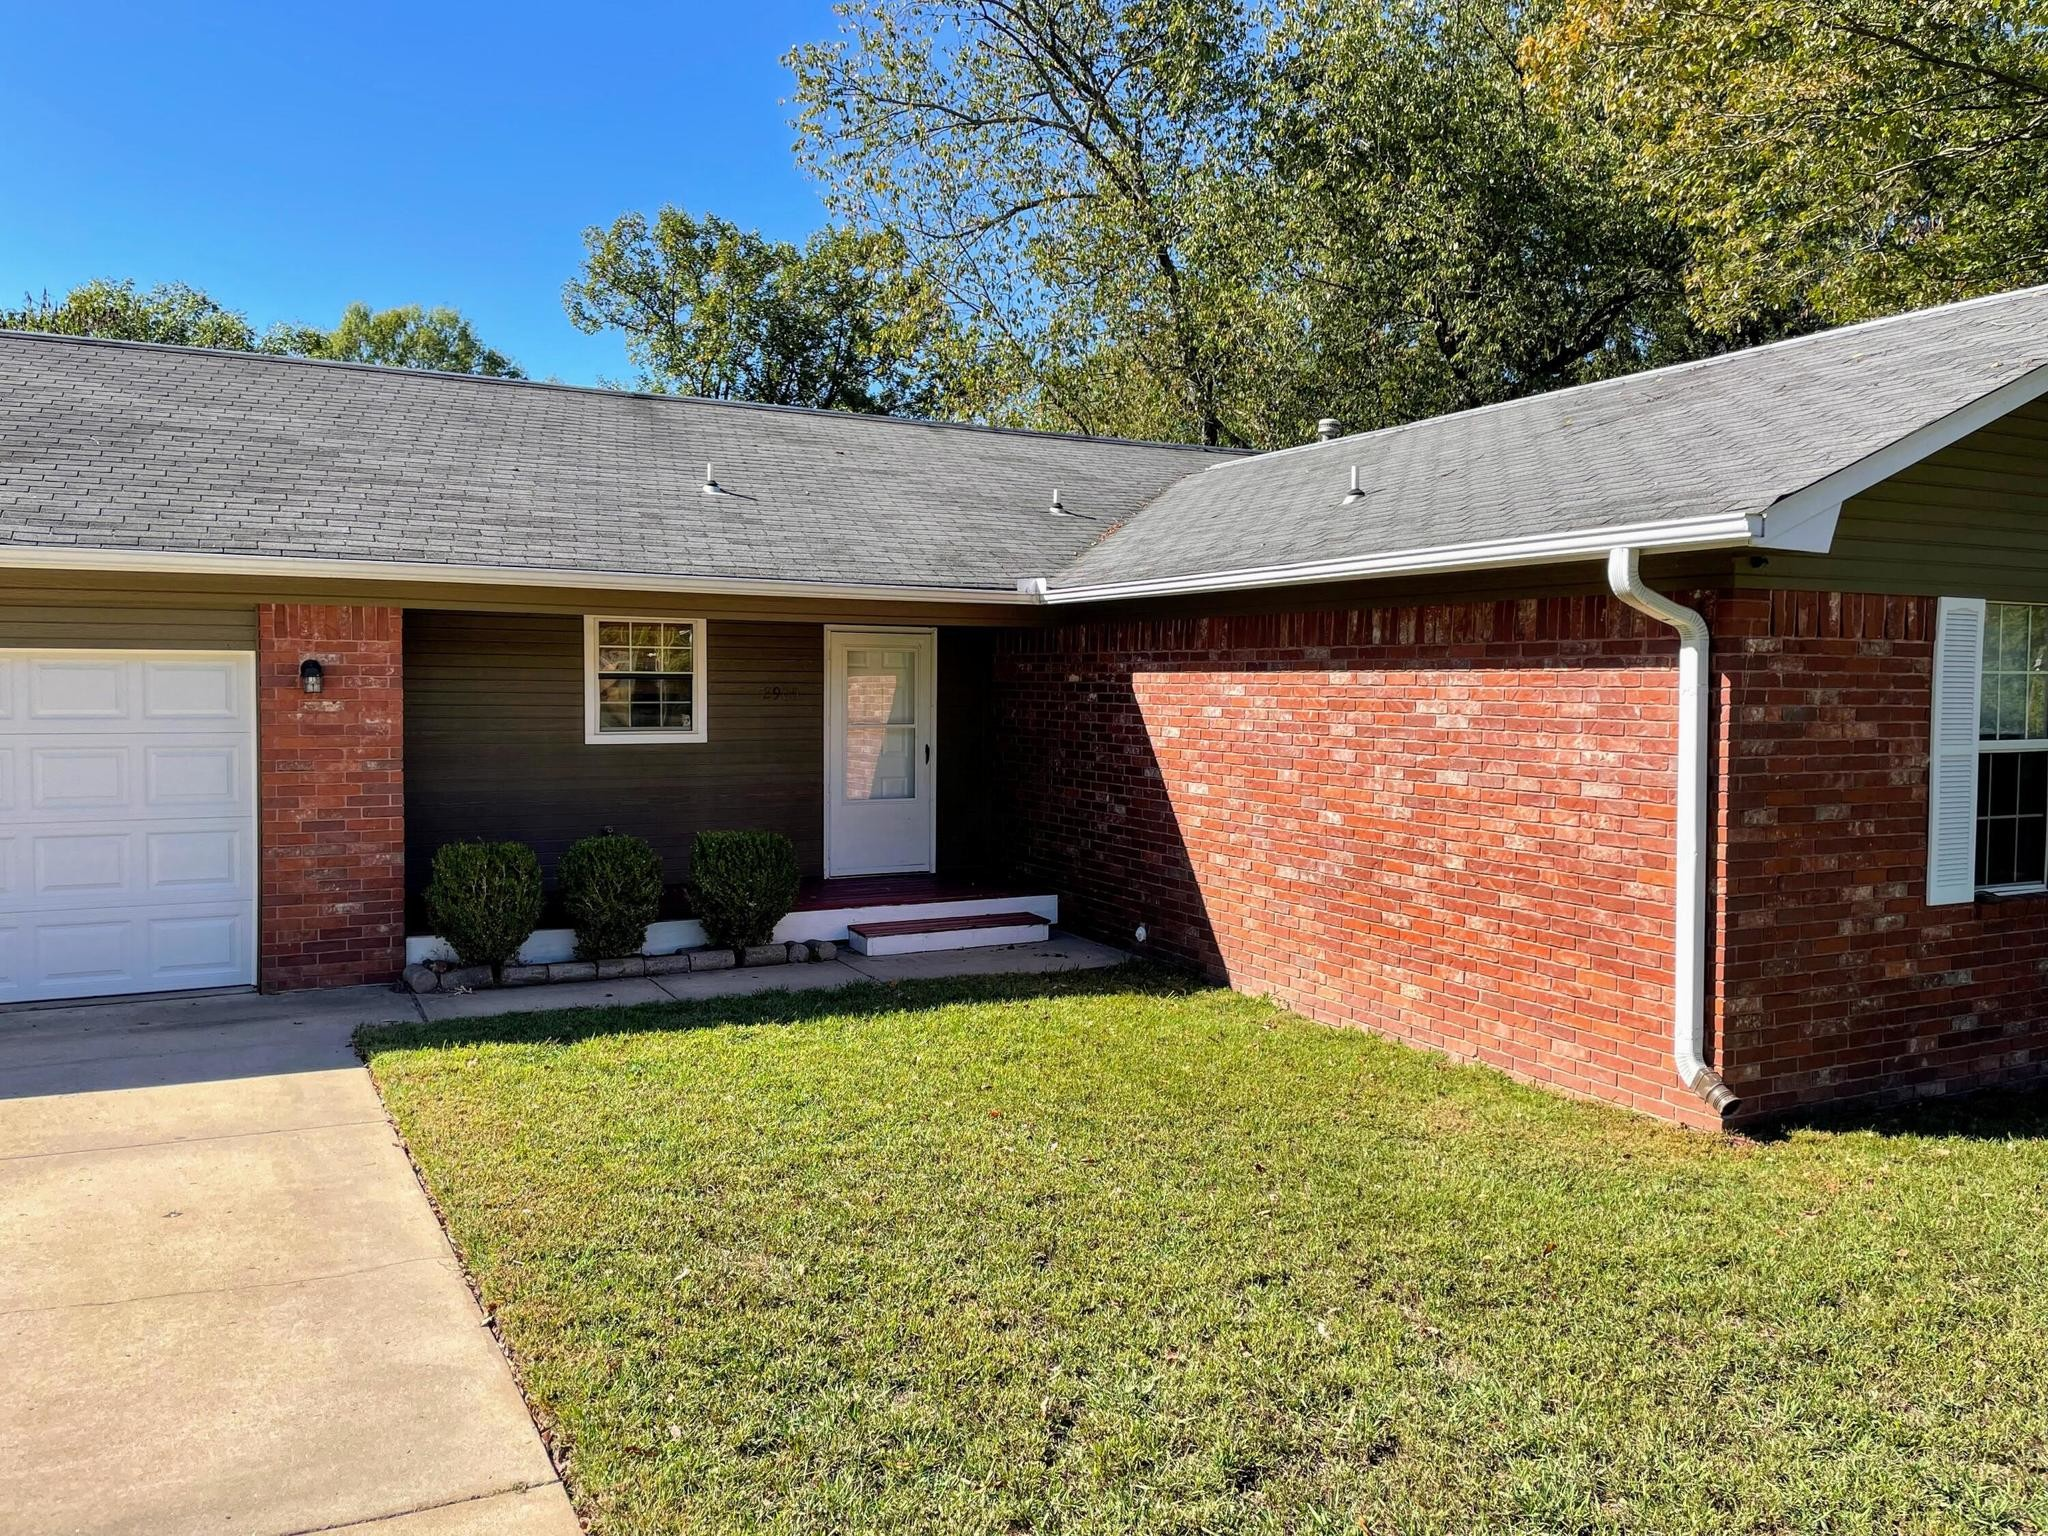 3-Bedroom House In Russellville